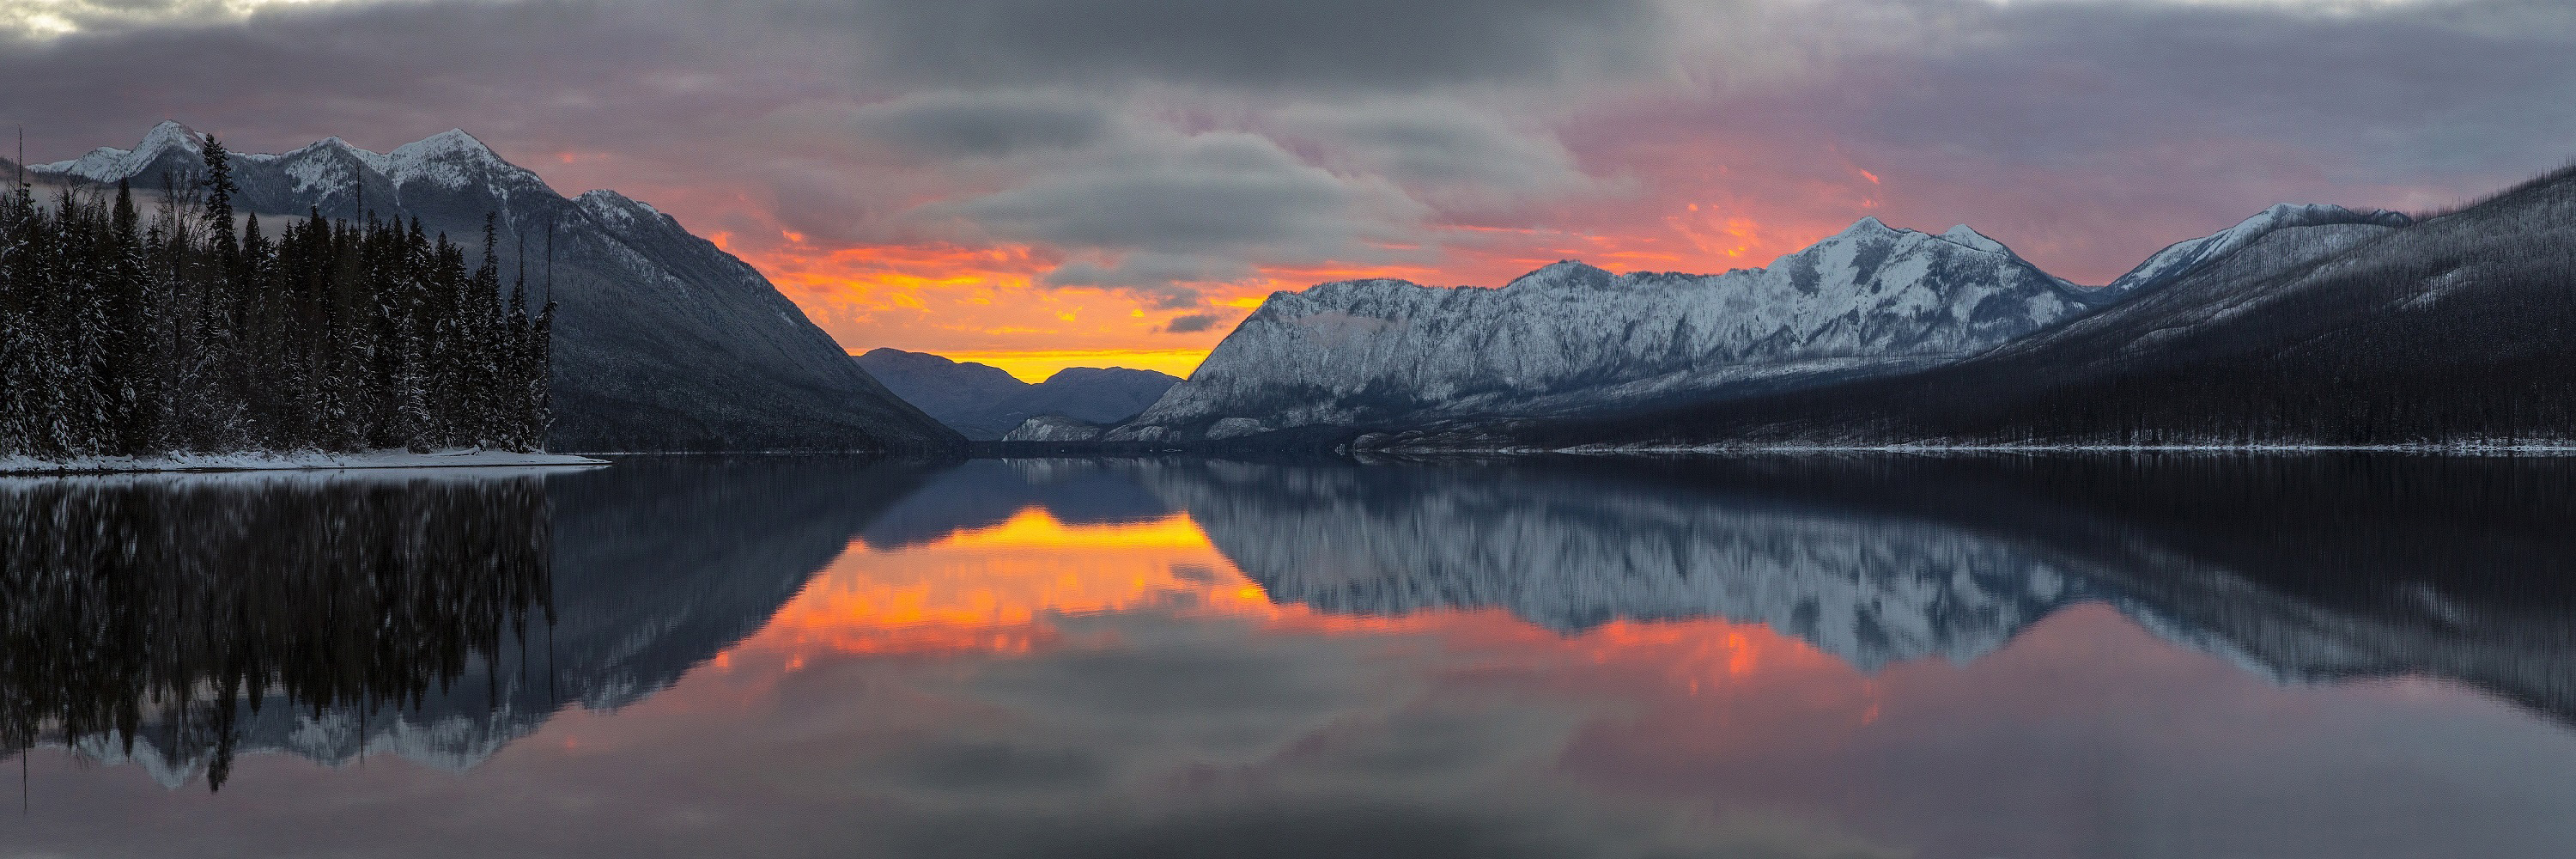 Fall Wallpapers In Pink Color Sunset Over The Apgar Mountains And Lake In Glacier